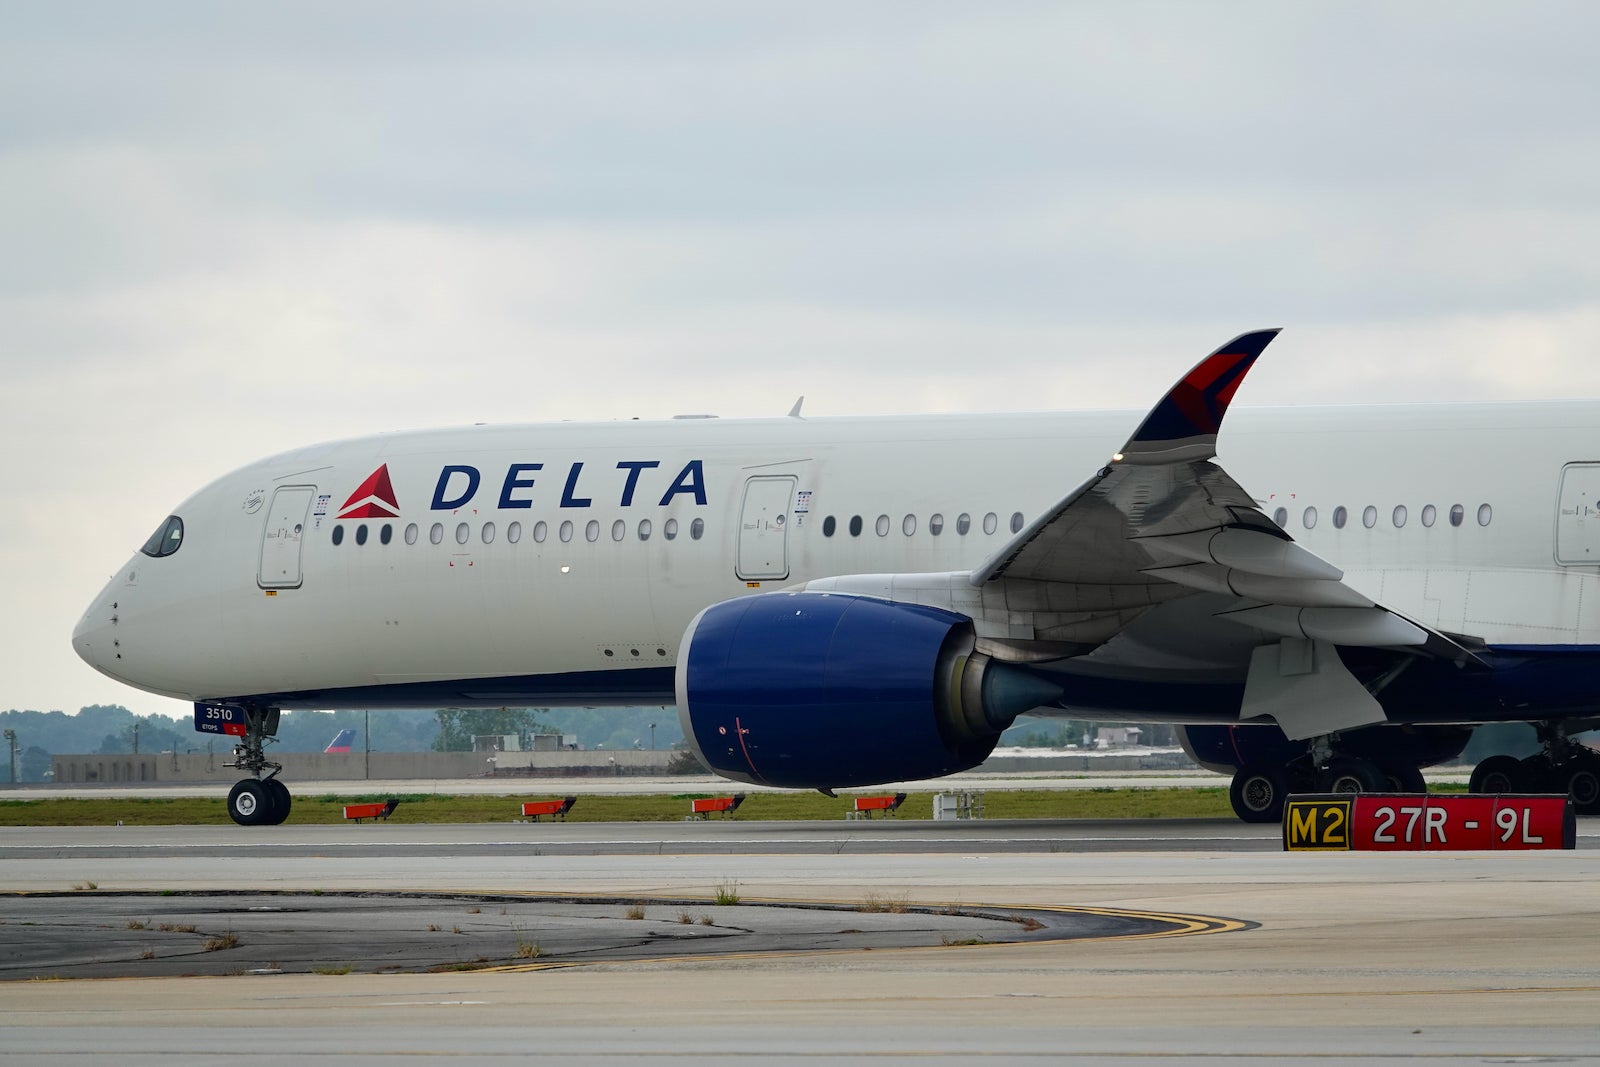 Delta cuts 3 long-haul routes in latest network adjustment